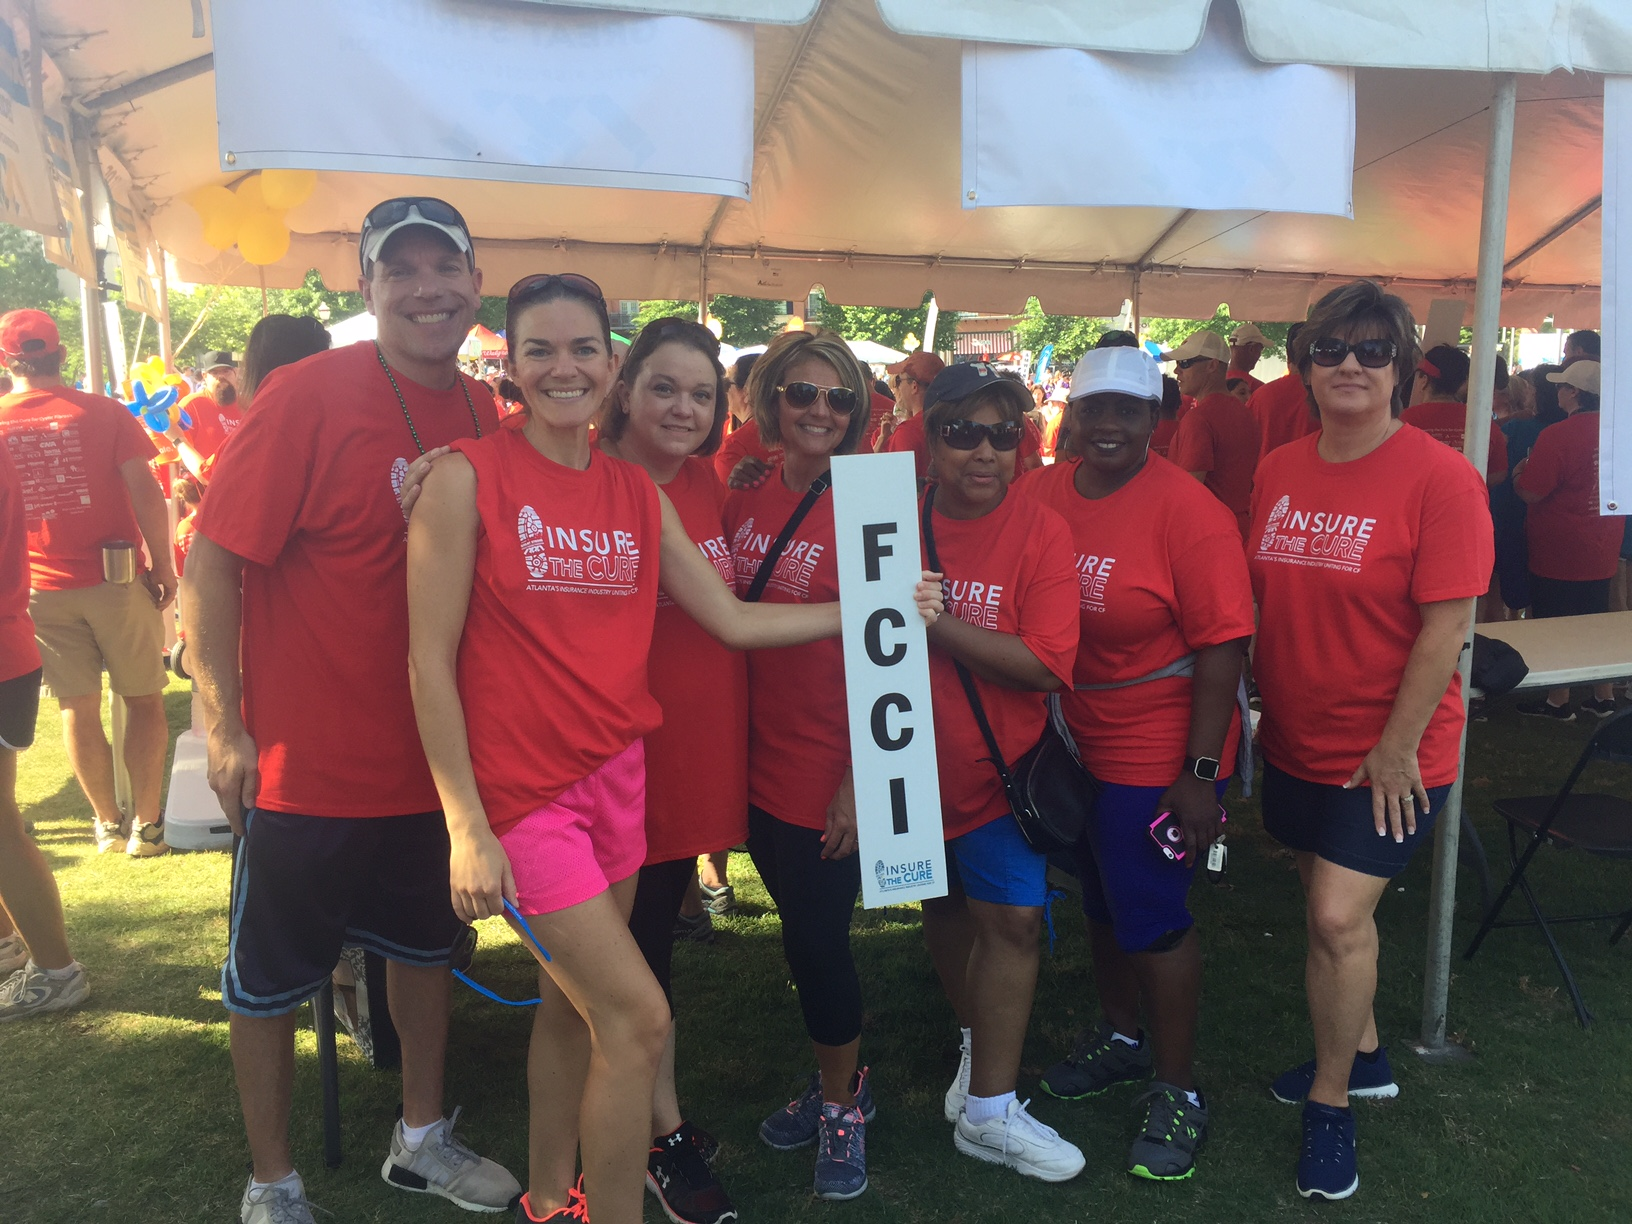 FCCI teammates walking for Cystic Fibrosis